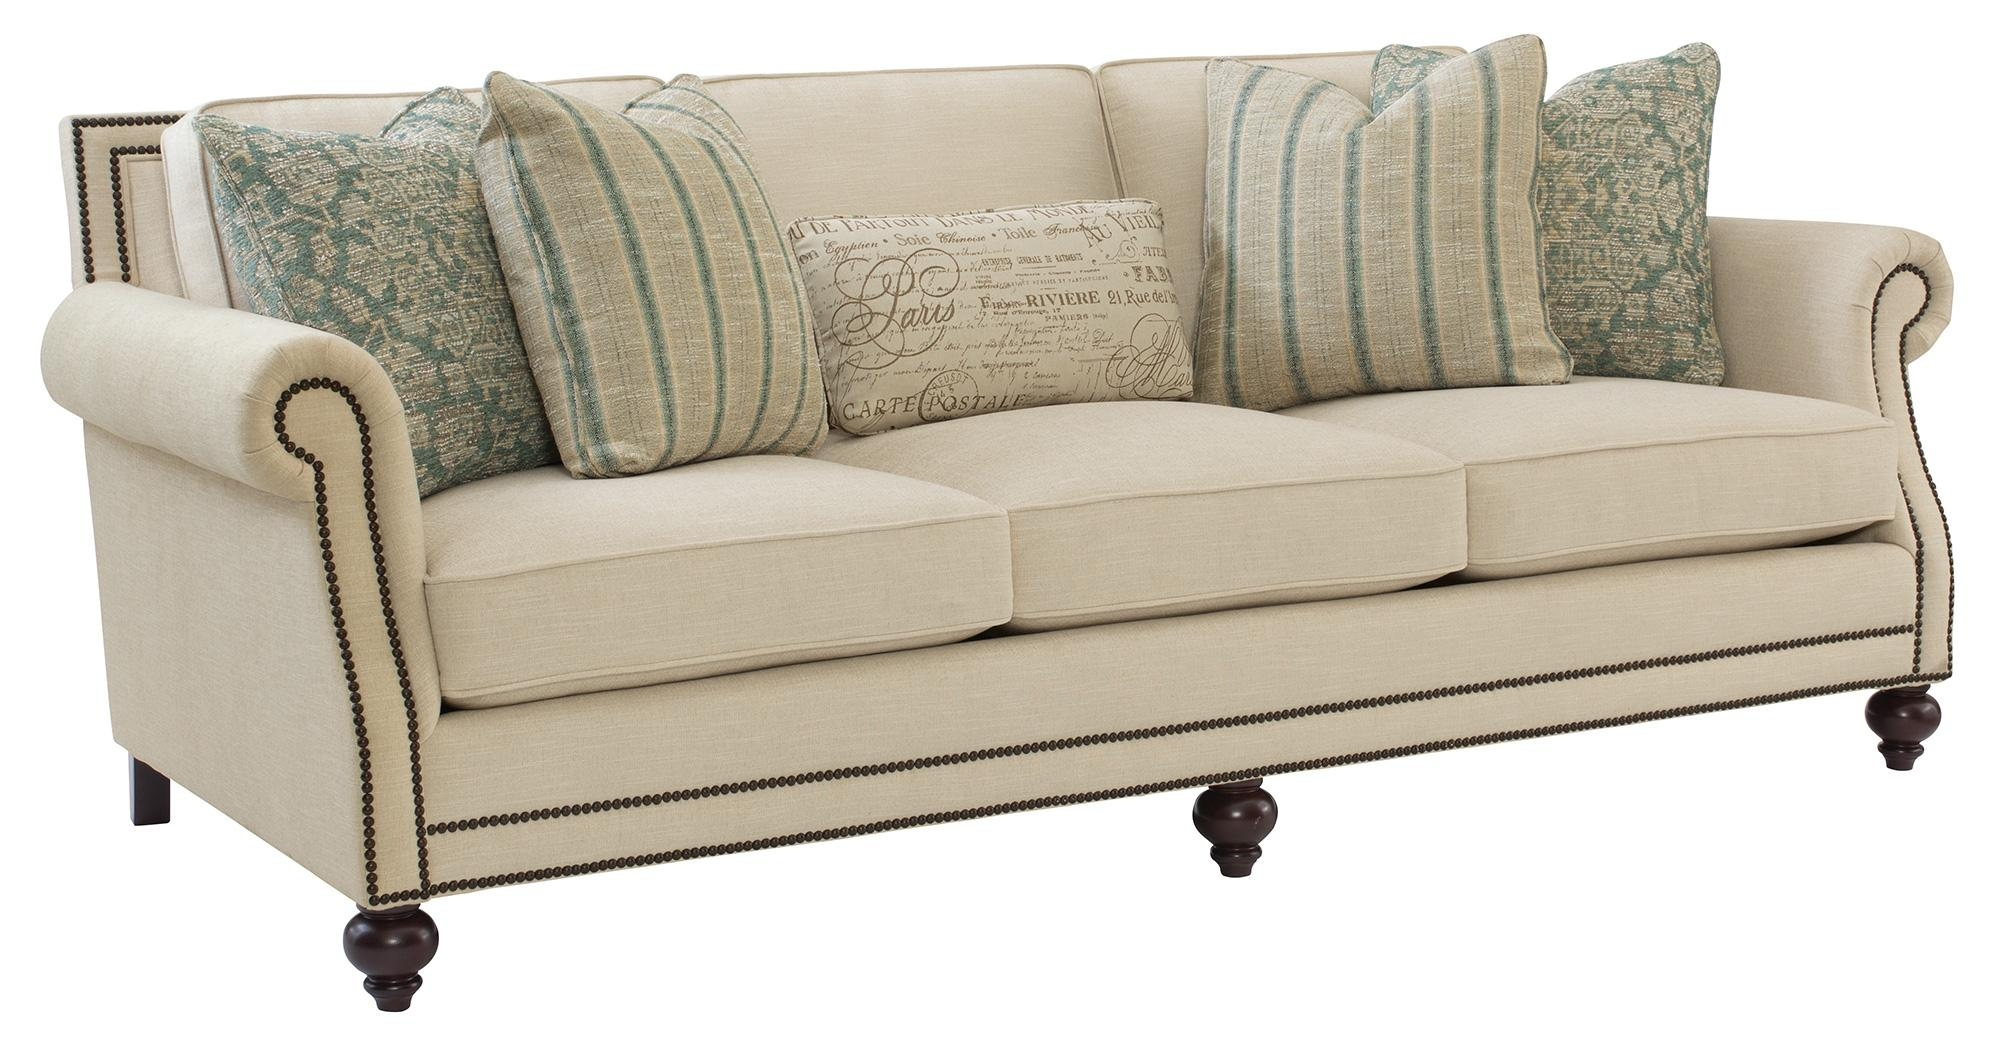 20 best ideas bernhardt sofas sofa ideas for Bernhardt furniture